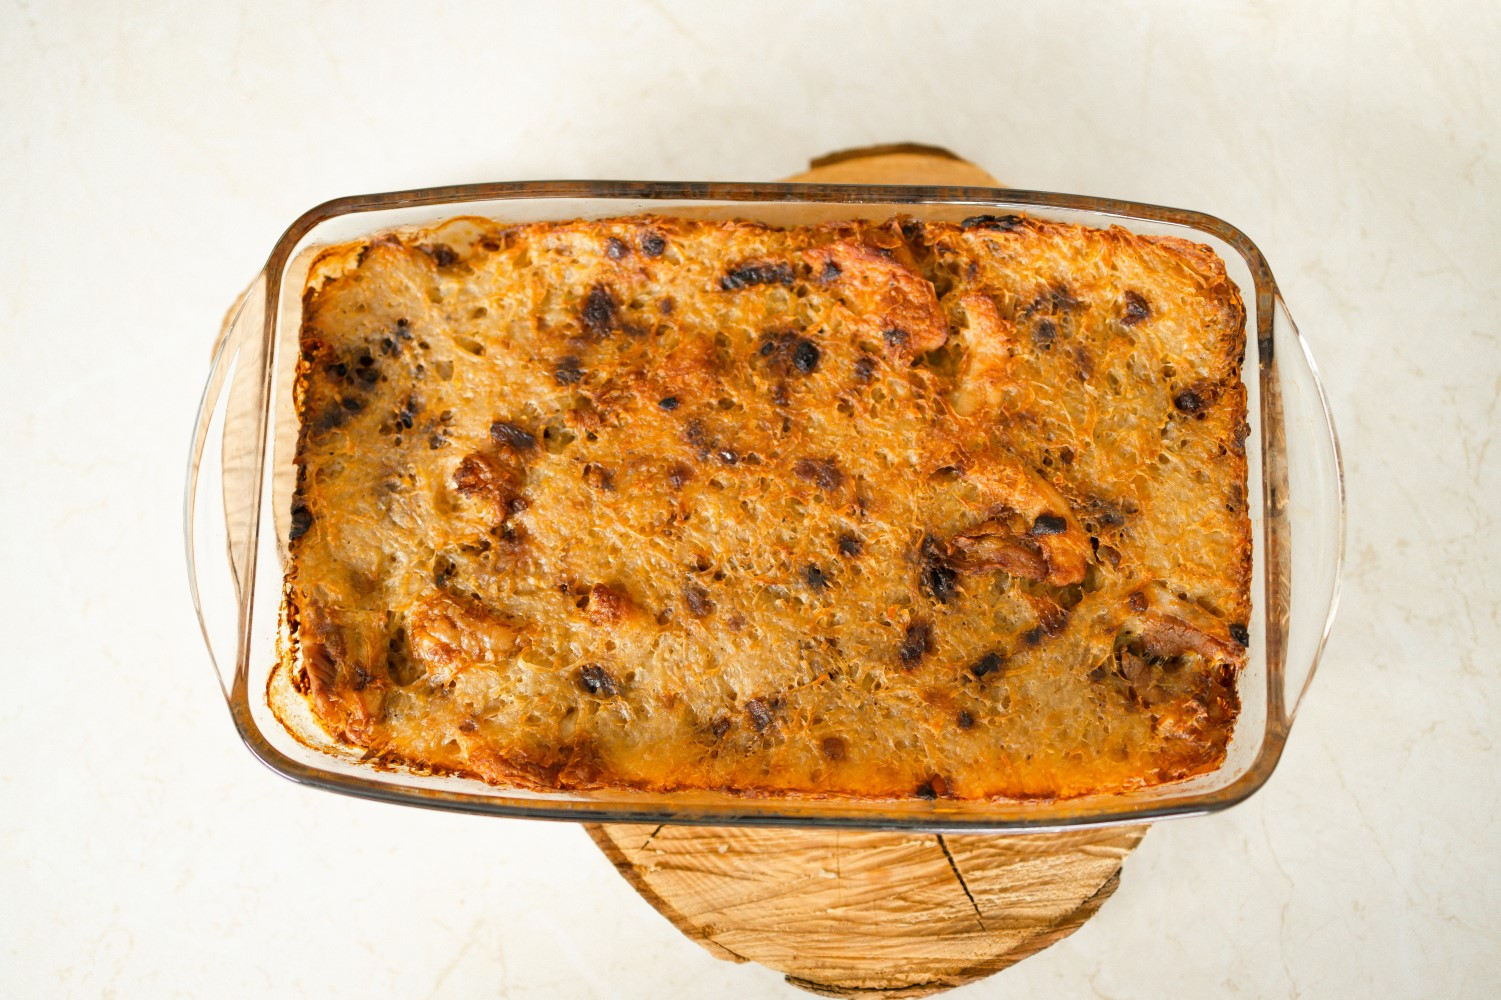 A casserole with crumb topping in a glass rectangular dish